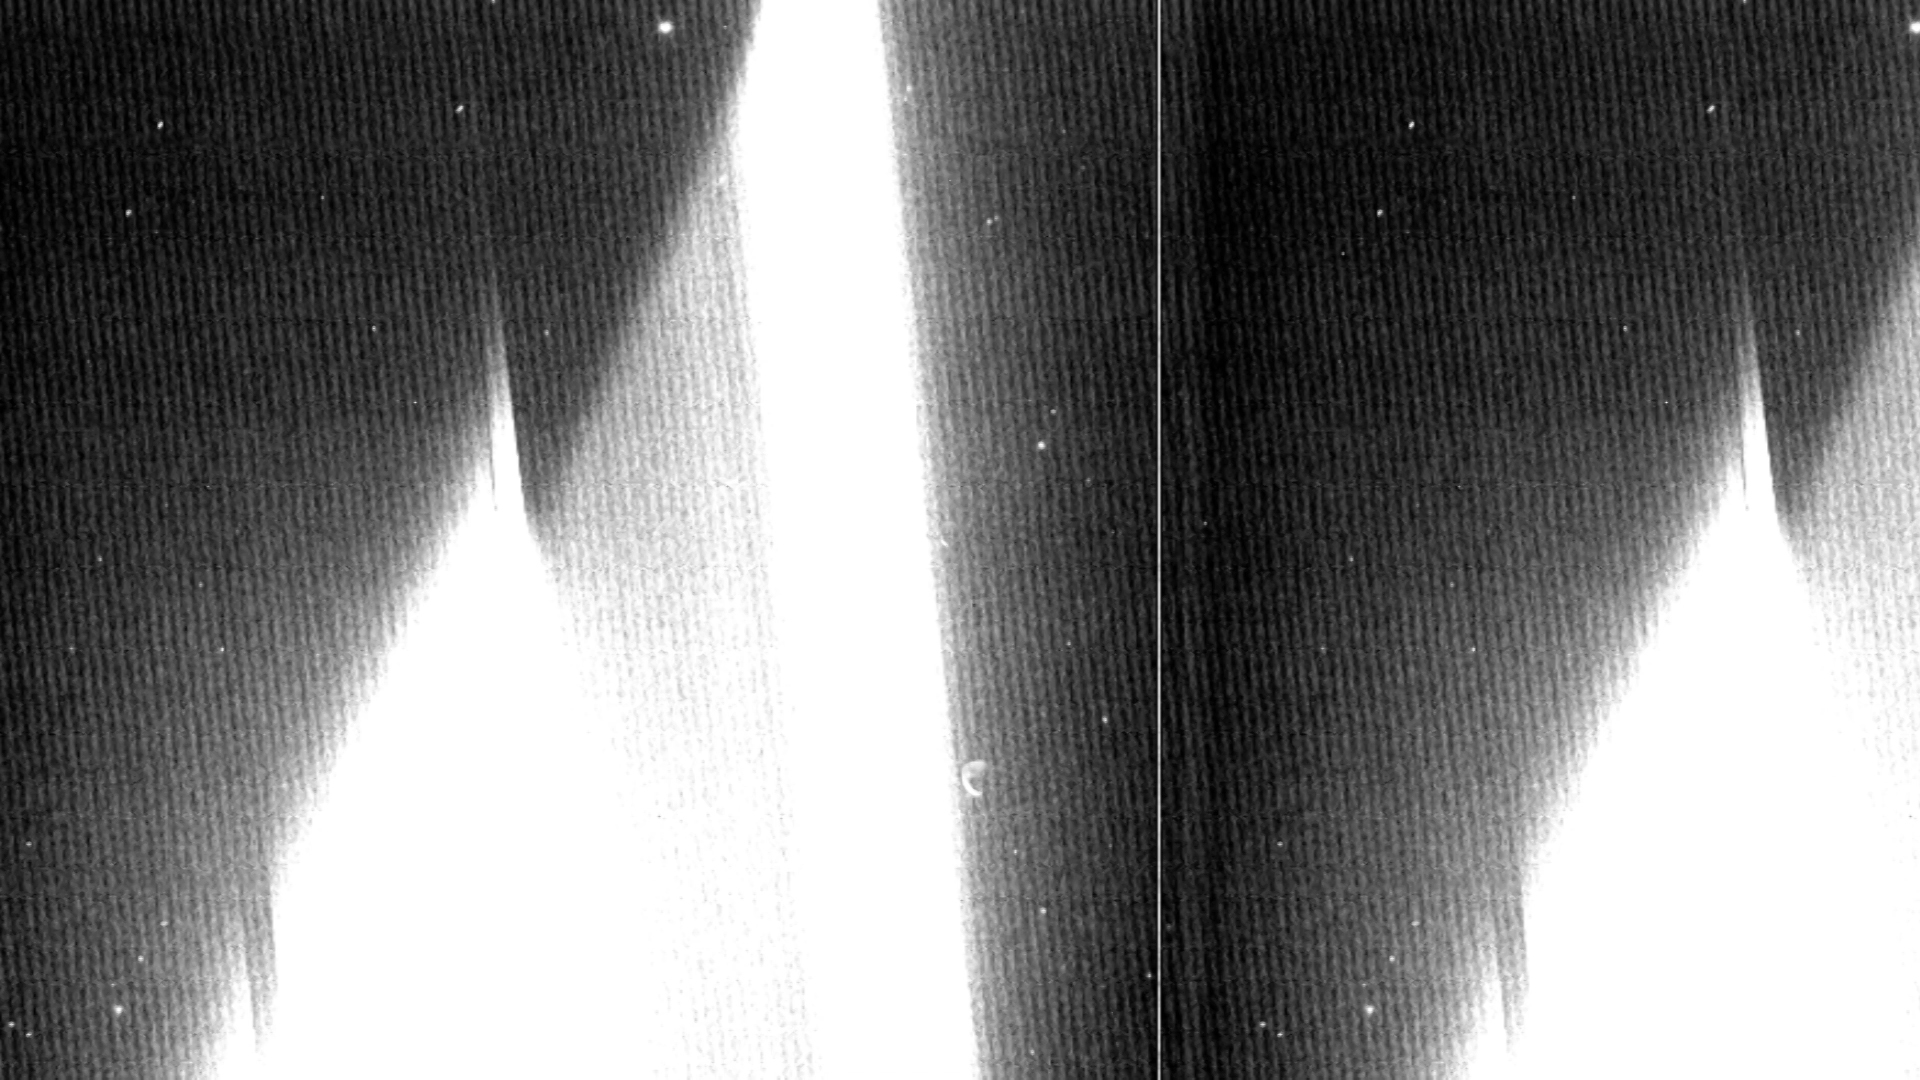 58 NEAR(ER)Stillcassini.jpg